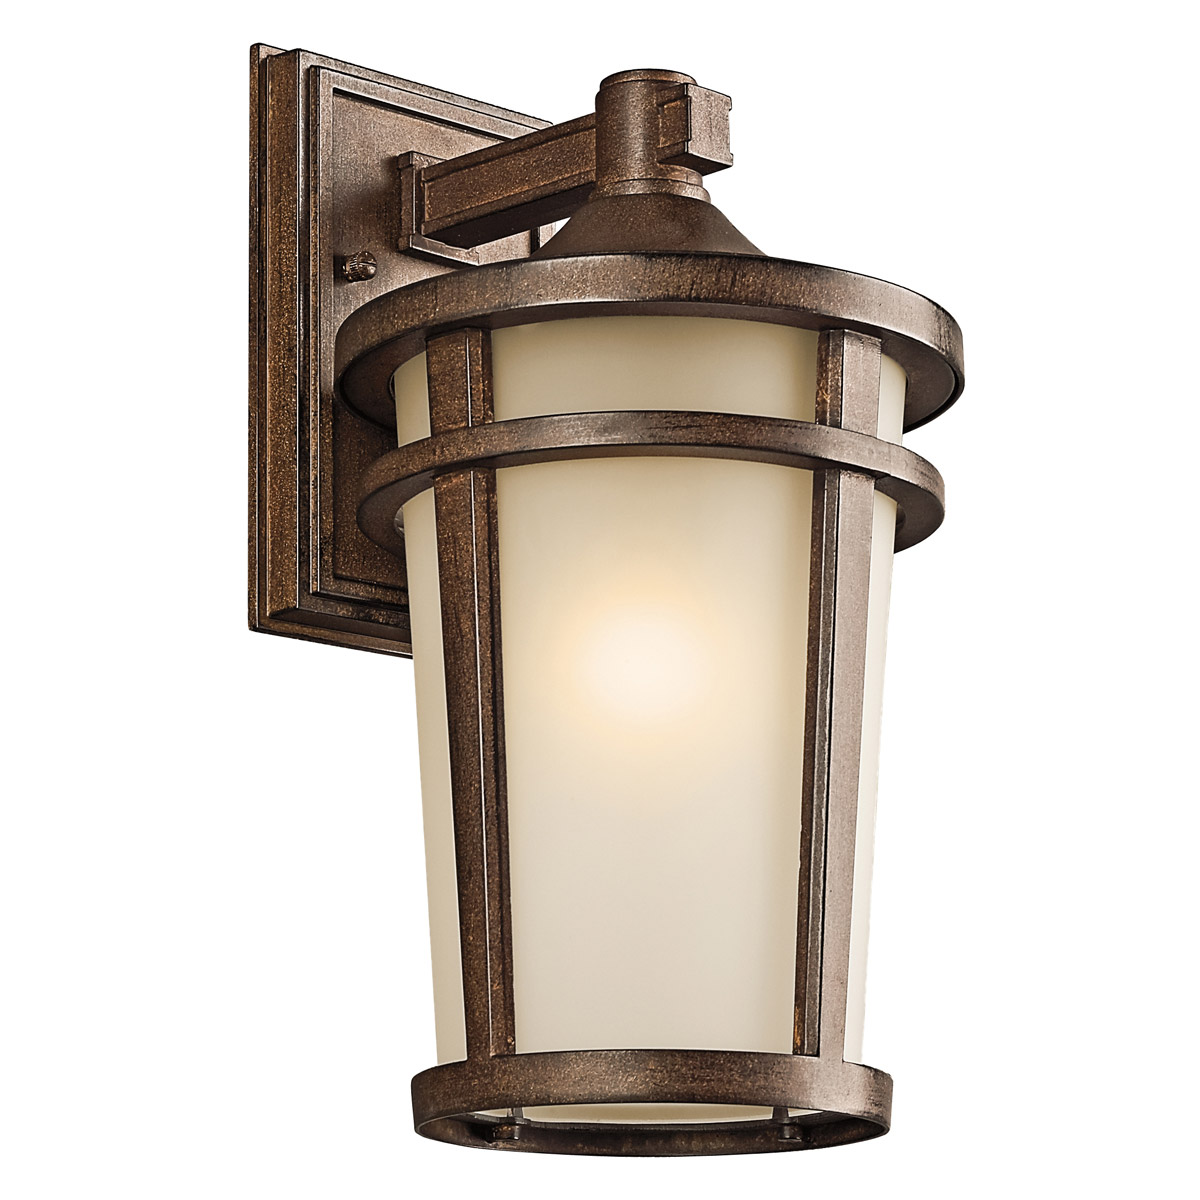 Kichler 49072BST Atwood Outdoor Wall Mount Lantern